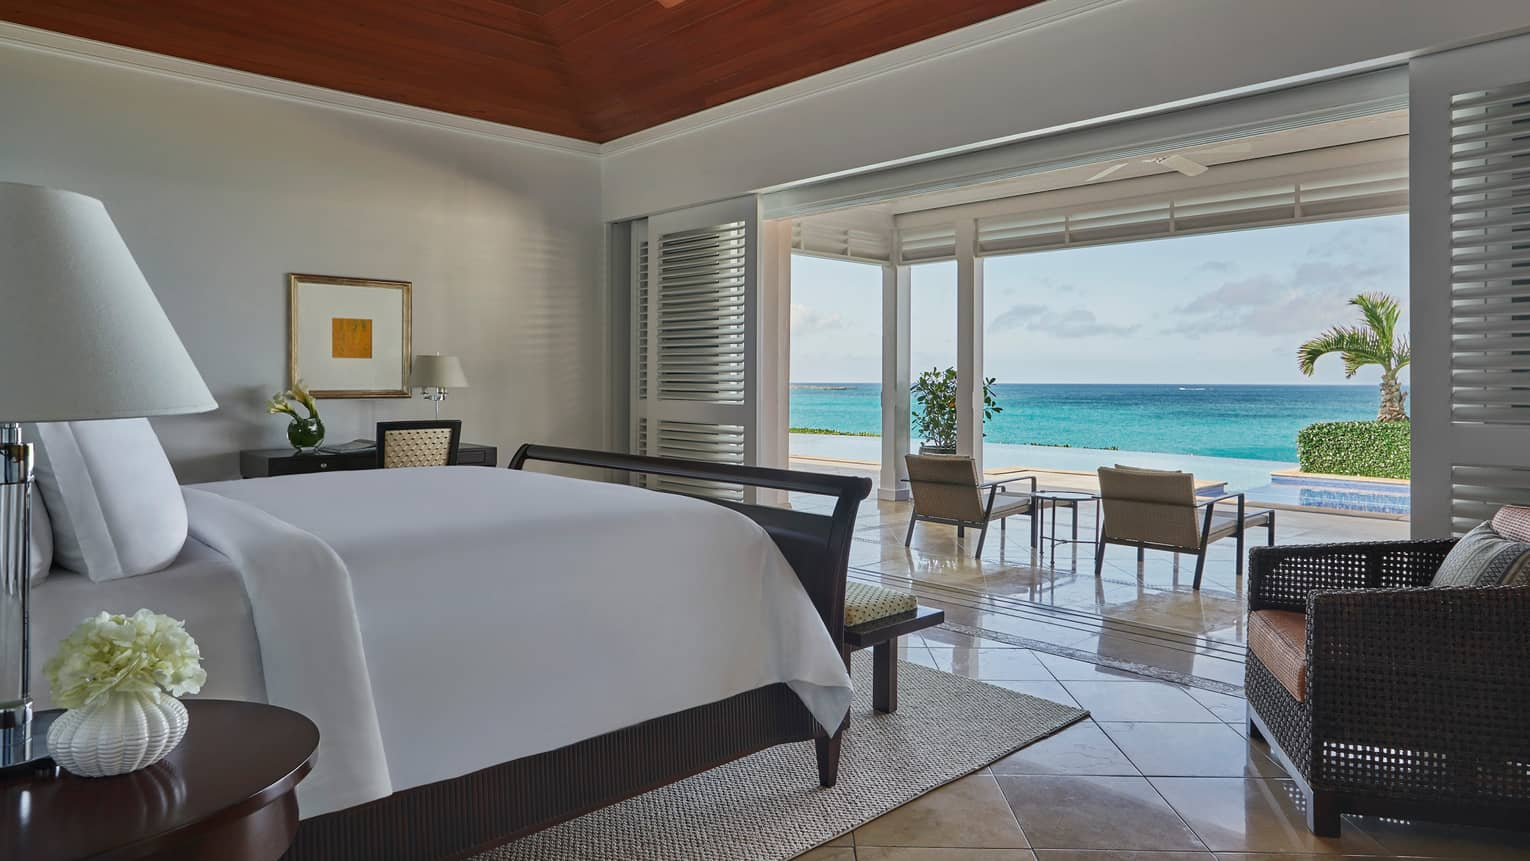 Admirable Bahamas Luxury Resort The Ocean Club A Four Seasons Resort Home Interior And Landscaping Ferensignezvosmurscom